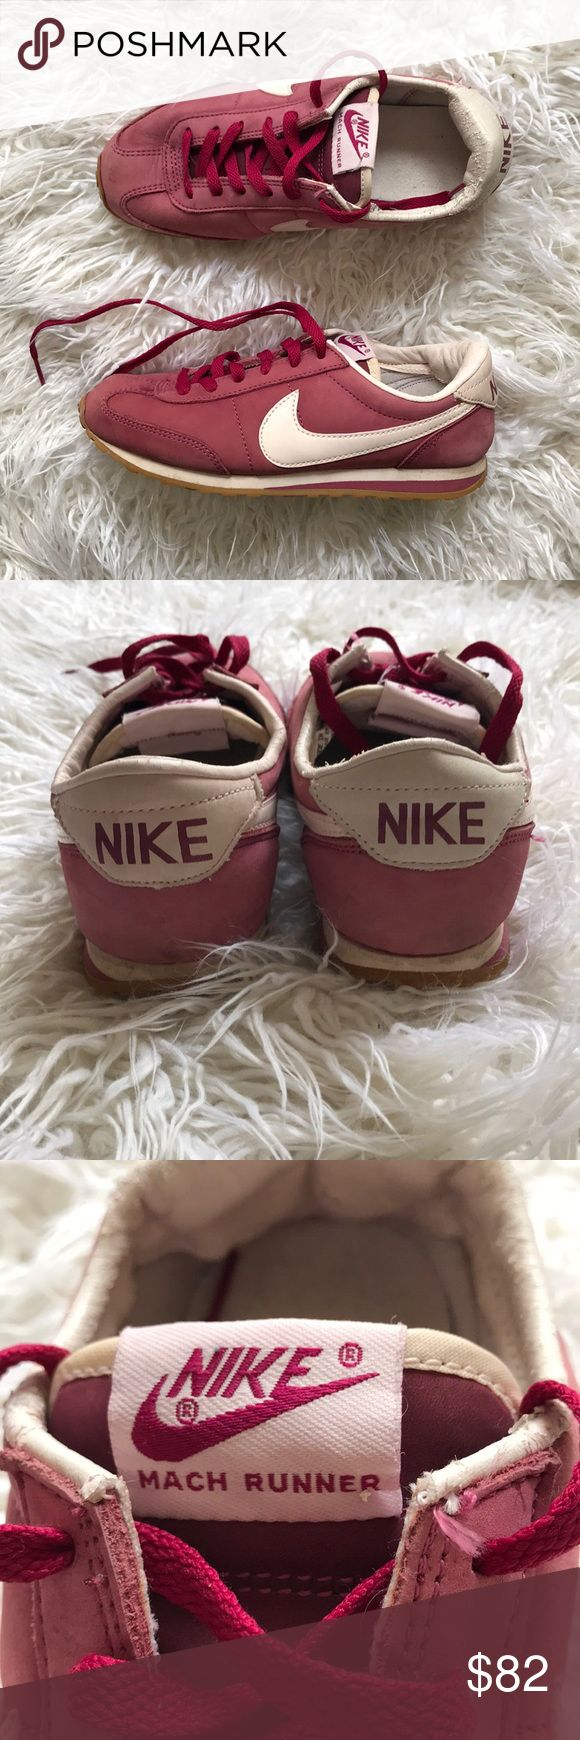 Retro Nike Mach Runners These maroon suede stunners are AMAZING! They are in retro condition but with HARDLY ANY WEAR 😍  Tags: Nike, vintage, retro, throwback Nike Shoes Sneakers